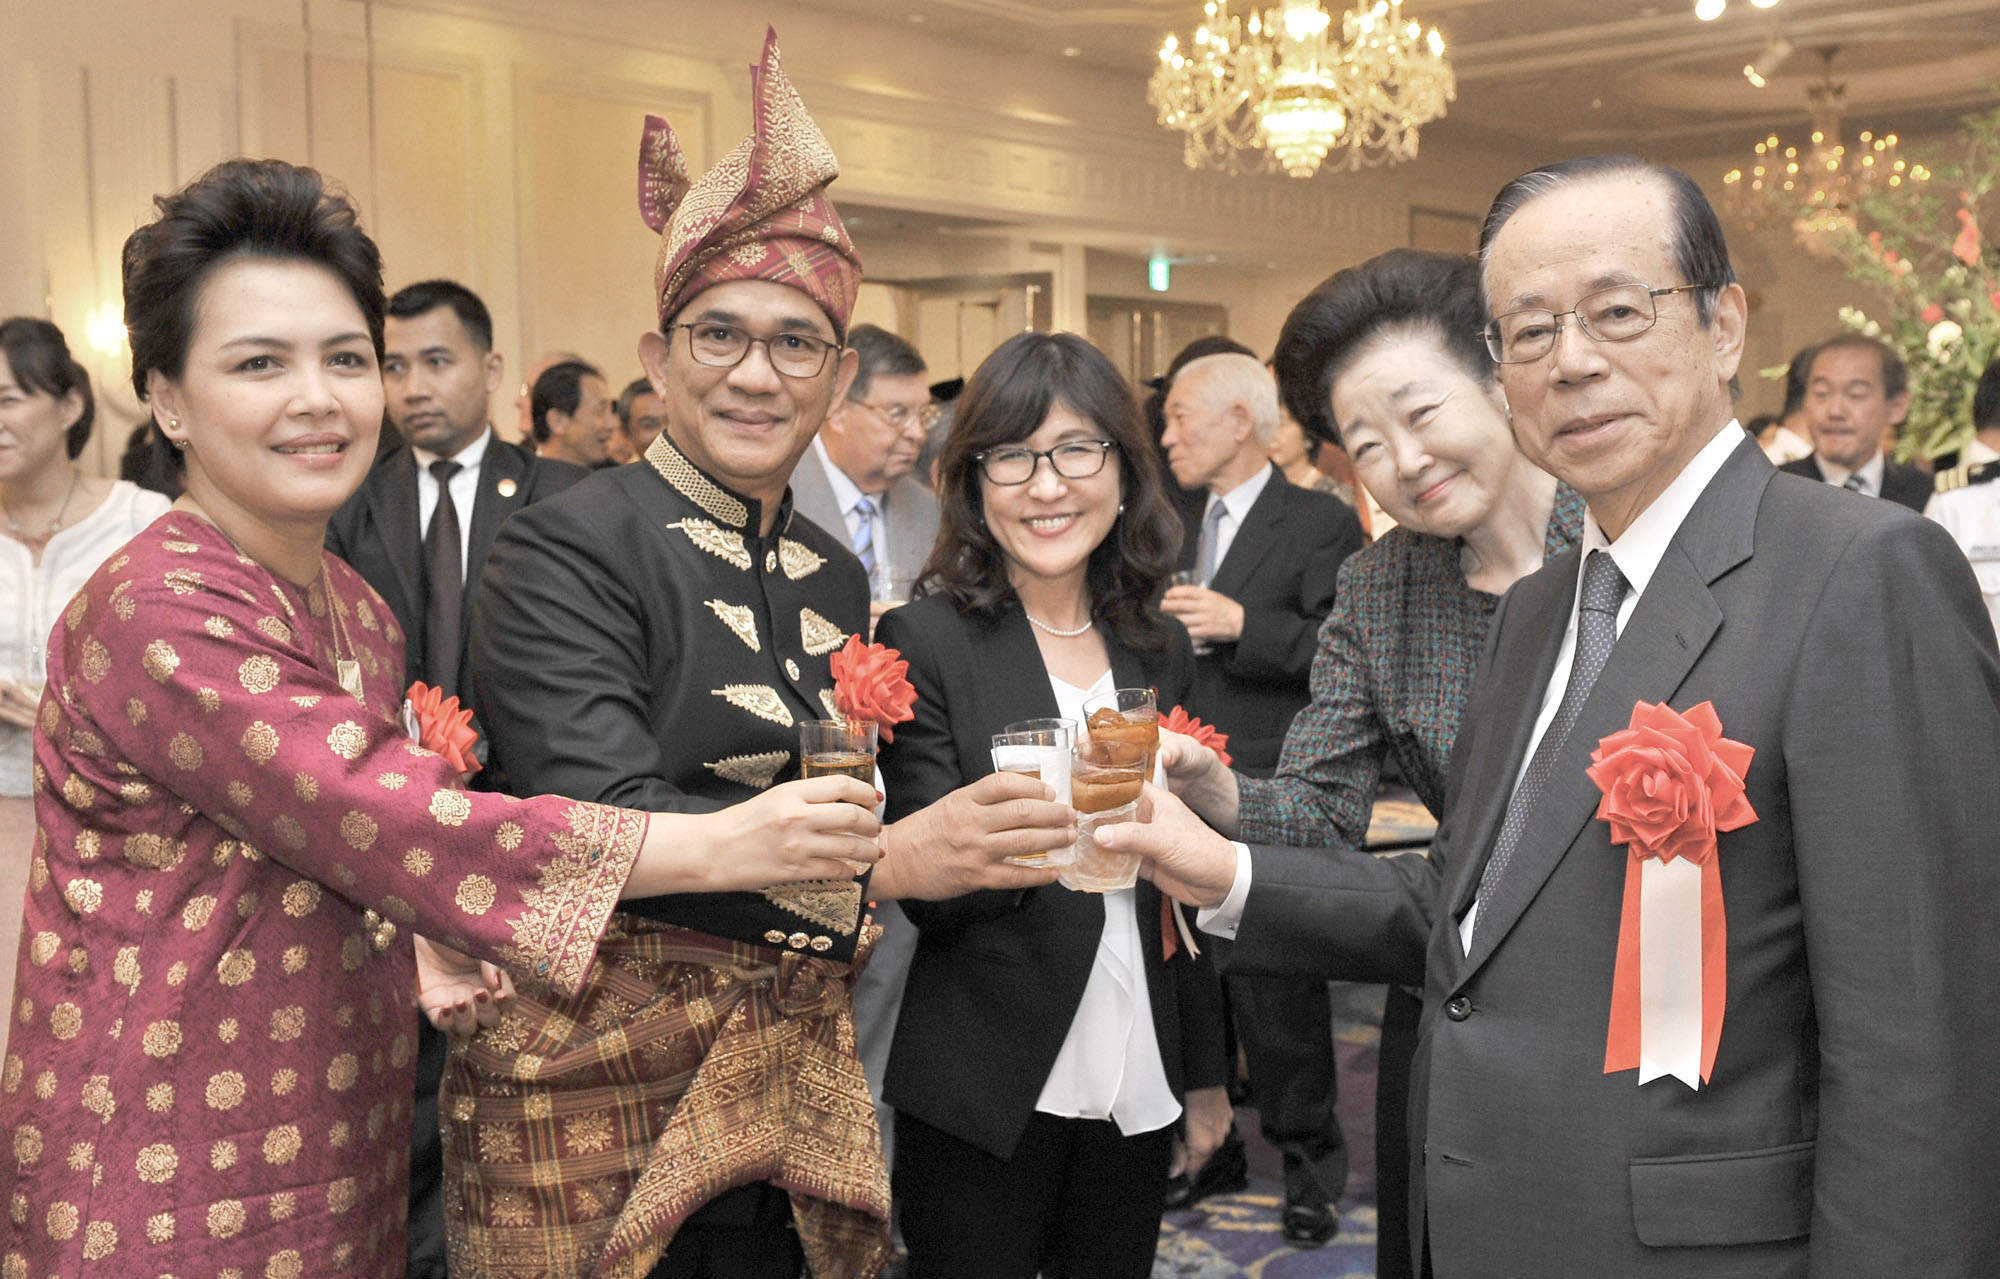 Indonesian Ambassador Yusron Ihza Mahendra (second from left) and his wife Lusiana (left) share a toast with Defense Minister Tomomi Inada (center), former Prime Minister and Chairman of the Japan-Indonesia Association Yasuo Fukuda (right) and his wife Kiyoko during a reception to celebrate the country's 71st Independence Day Anniversary at the New Otani Hotel, Tokyo on Aug. 26. | YOSHIAKI MIURA